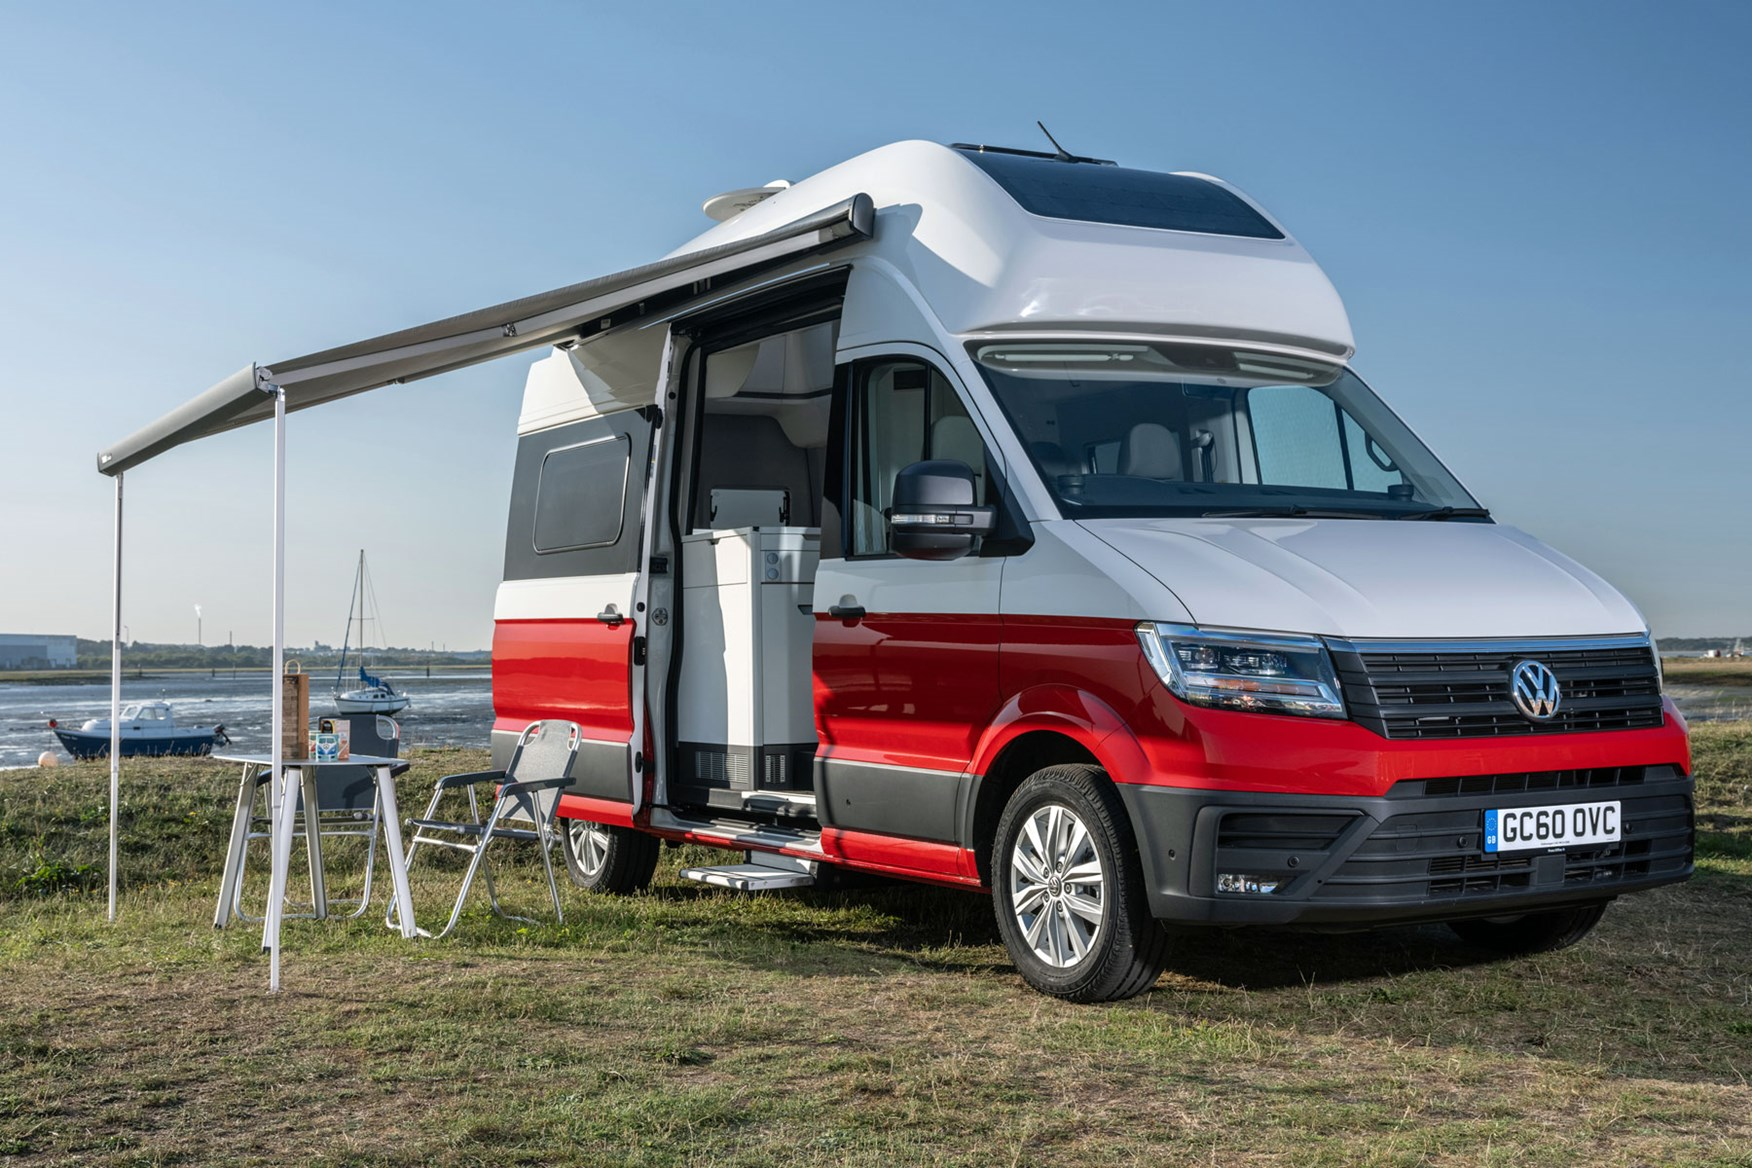 Volkswagen Grand California Review Full Uk Test Of Factory Built Supersized Campervan From Vw Parkers